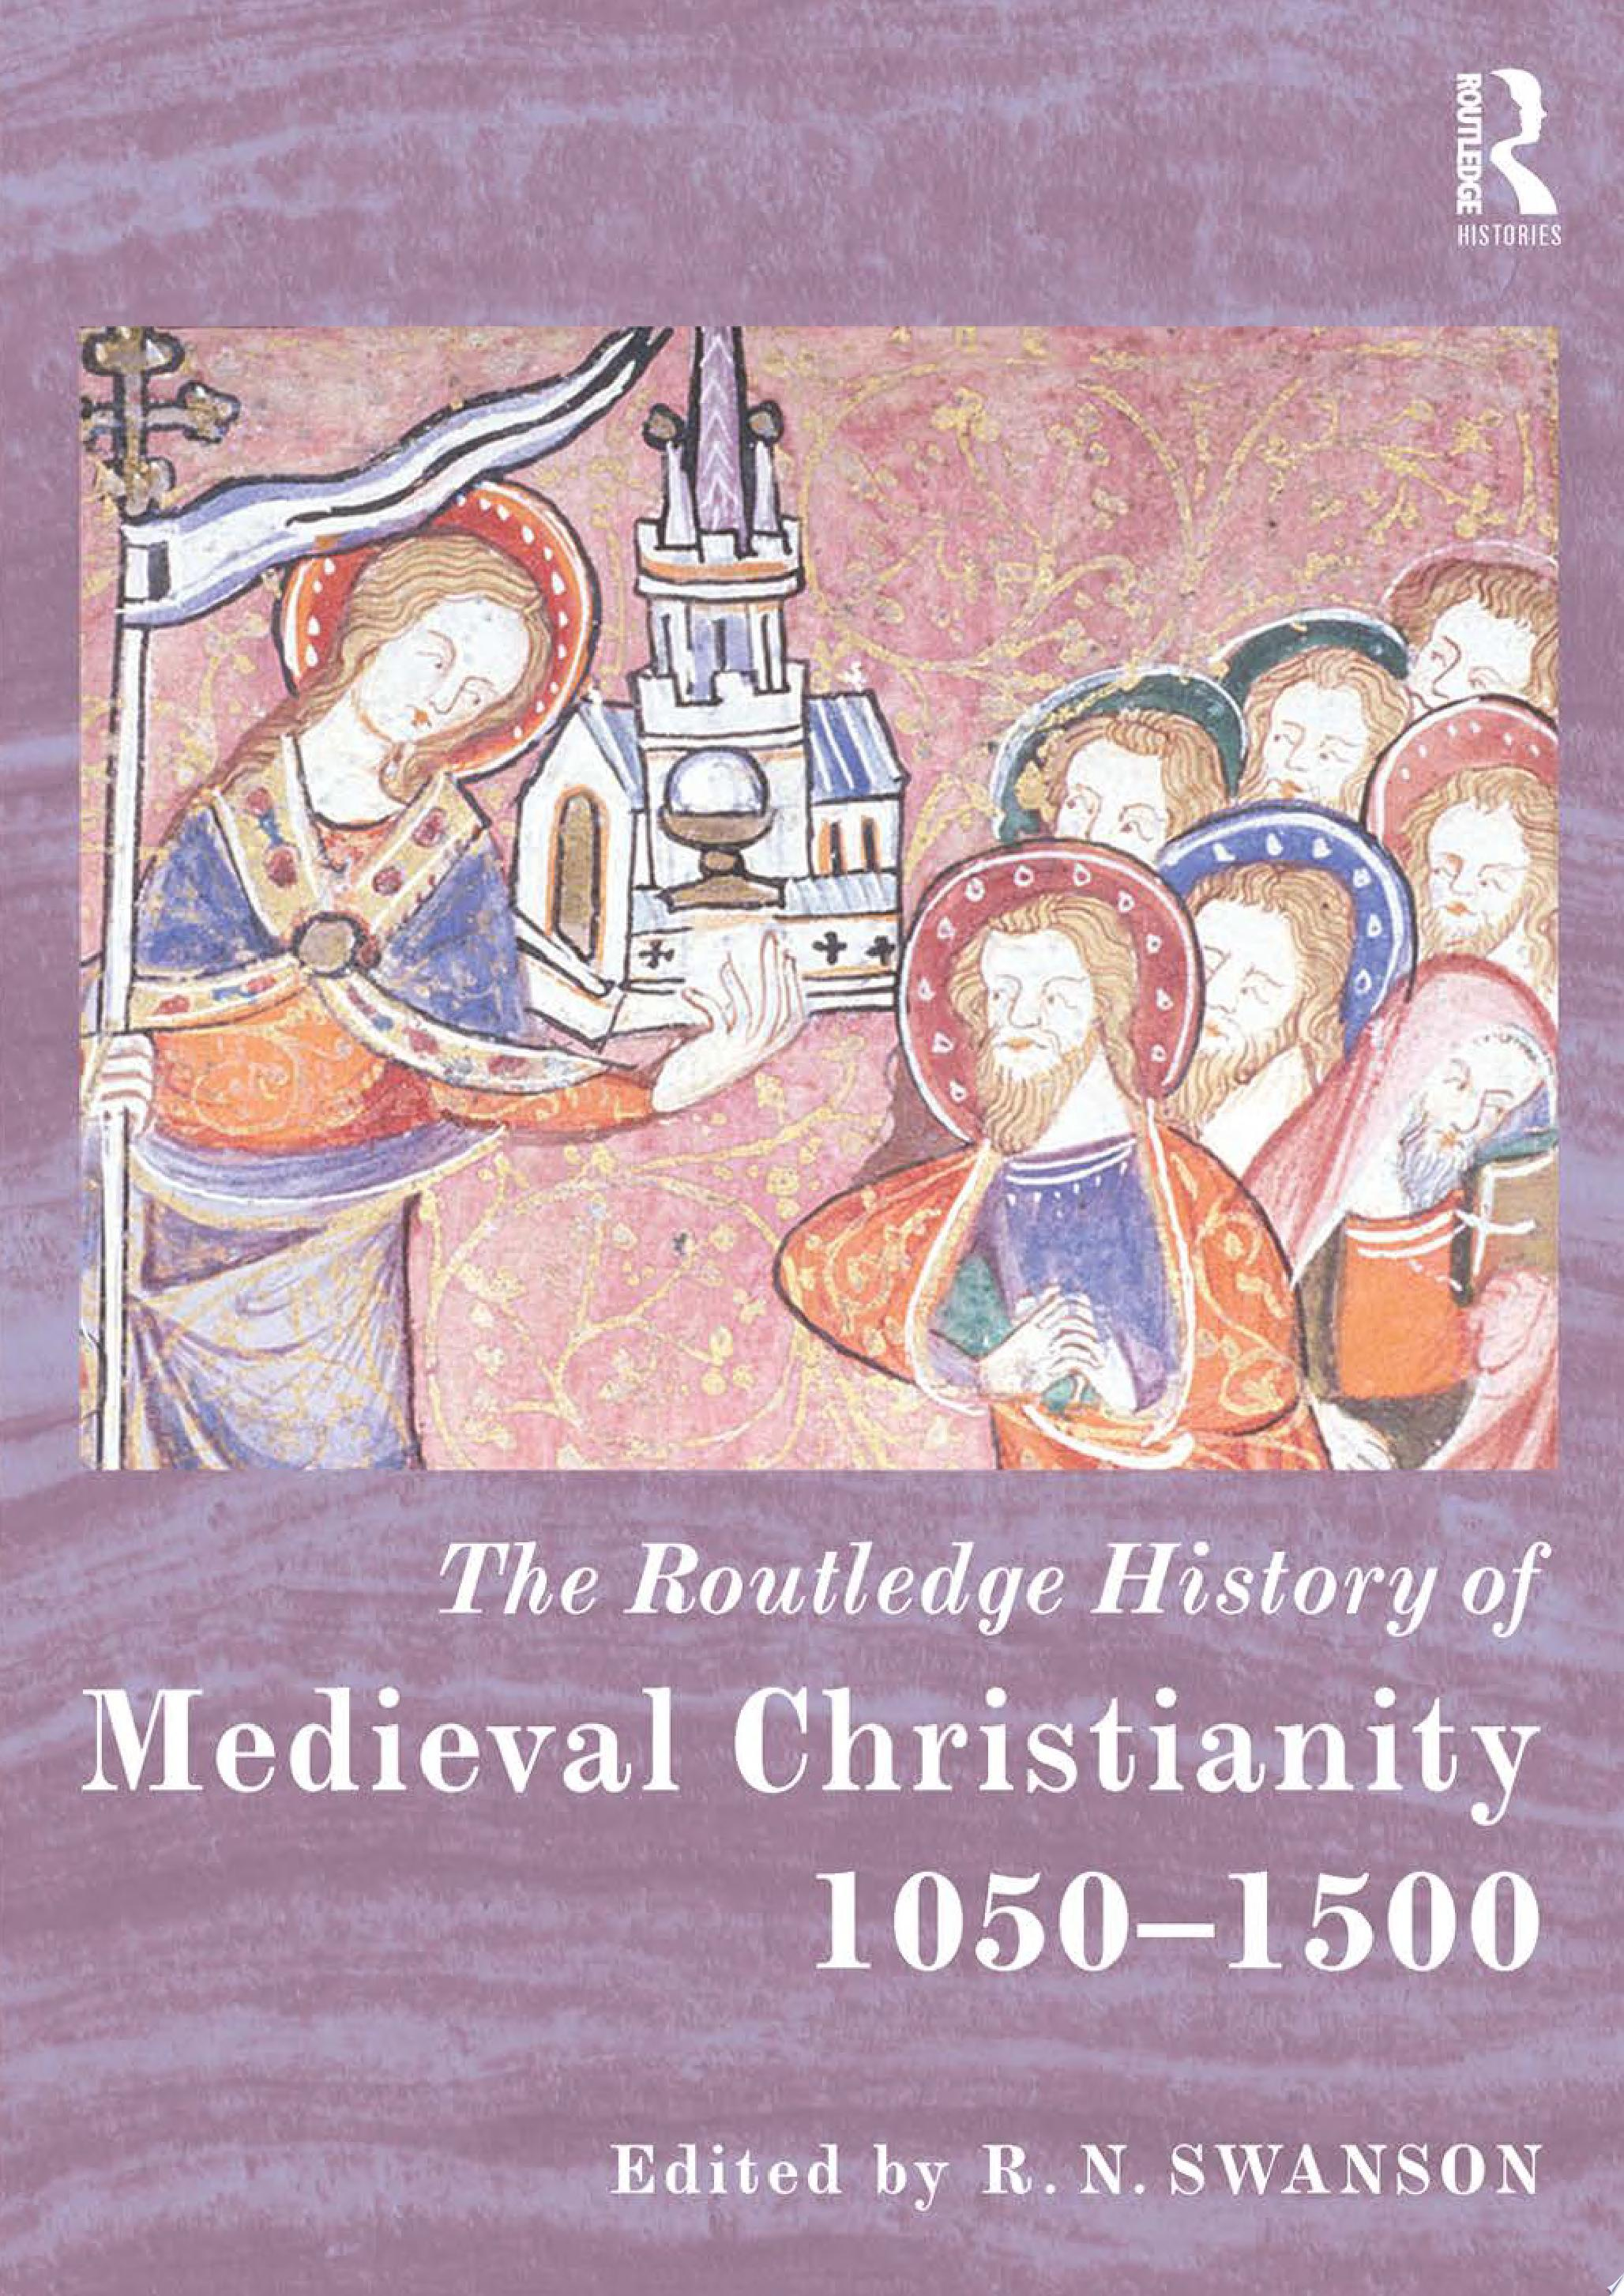 The Routledge History of Medieval Christianity